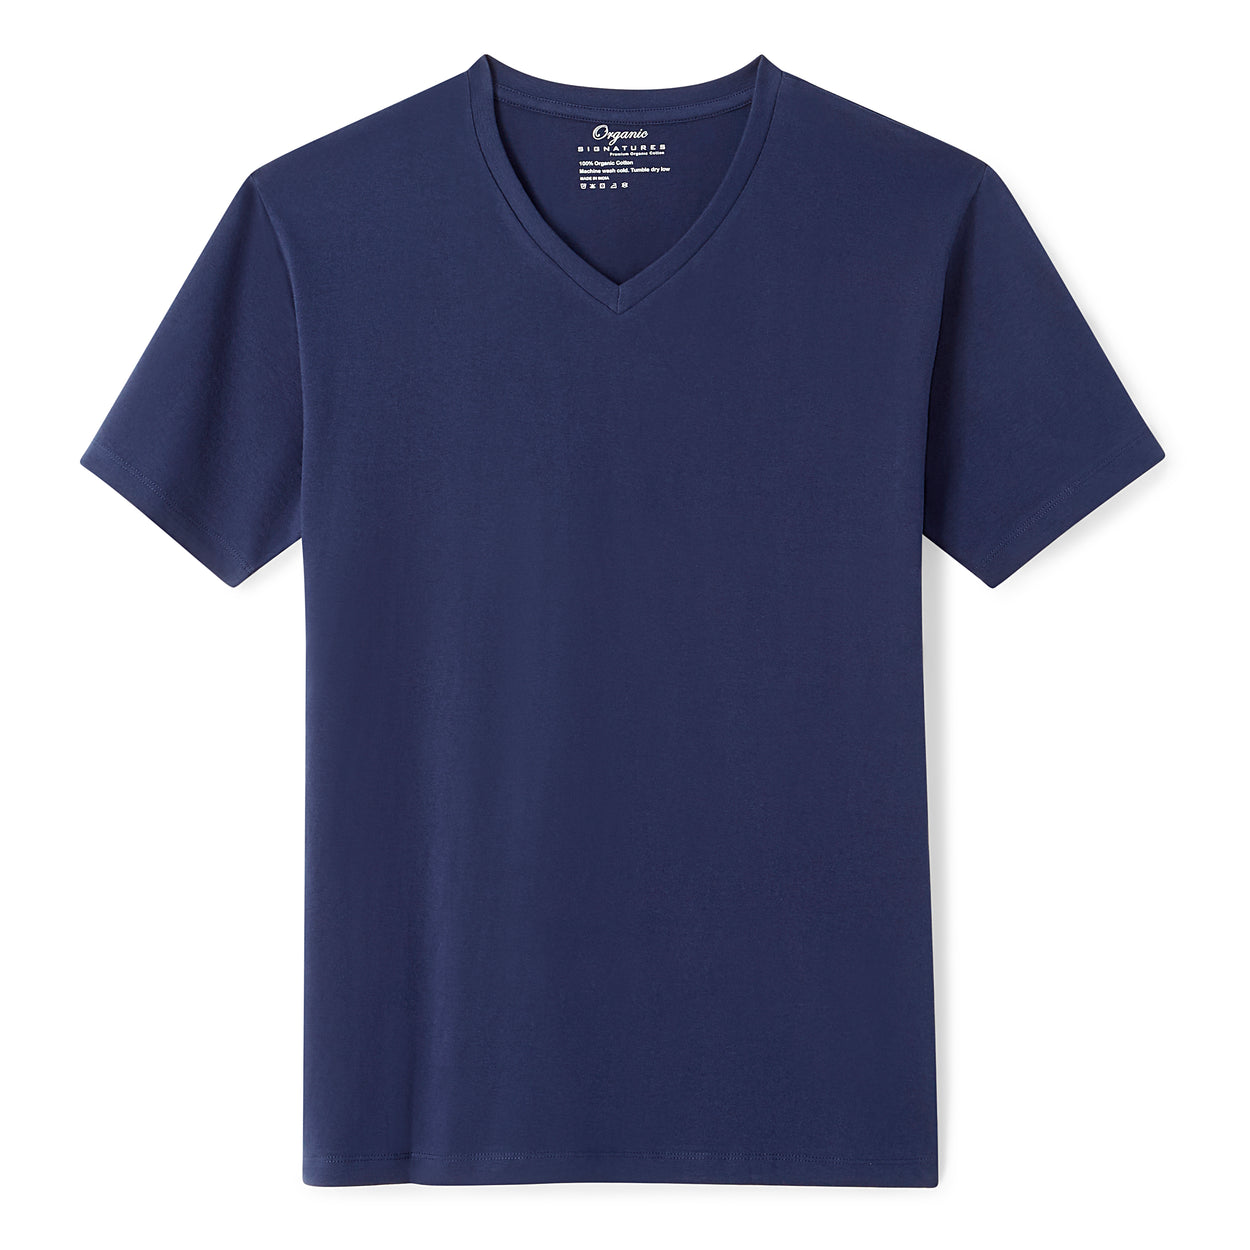 5156dd54259 Navy Blue Organic Signatures T-Shirt For Men